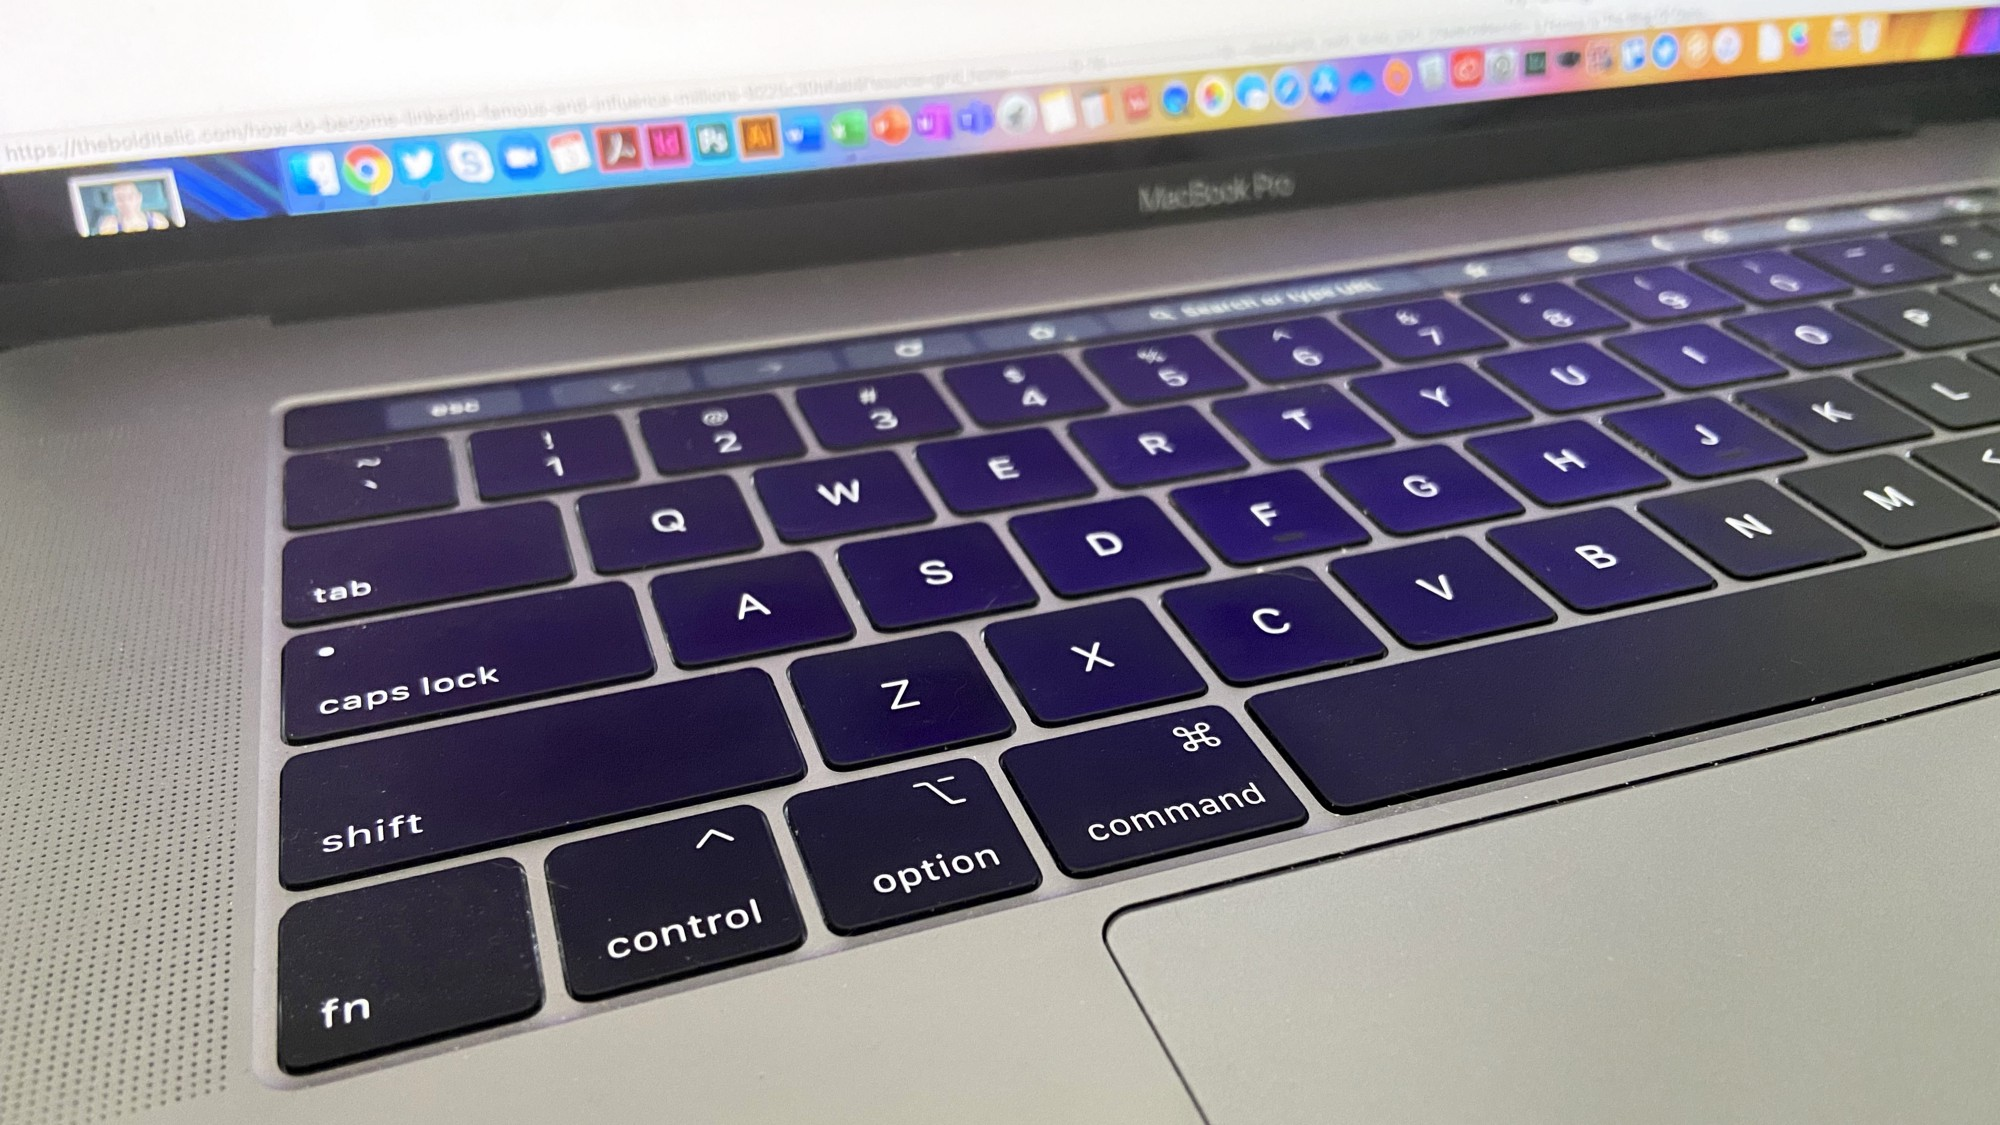 The keyboard of an Apple laptop.